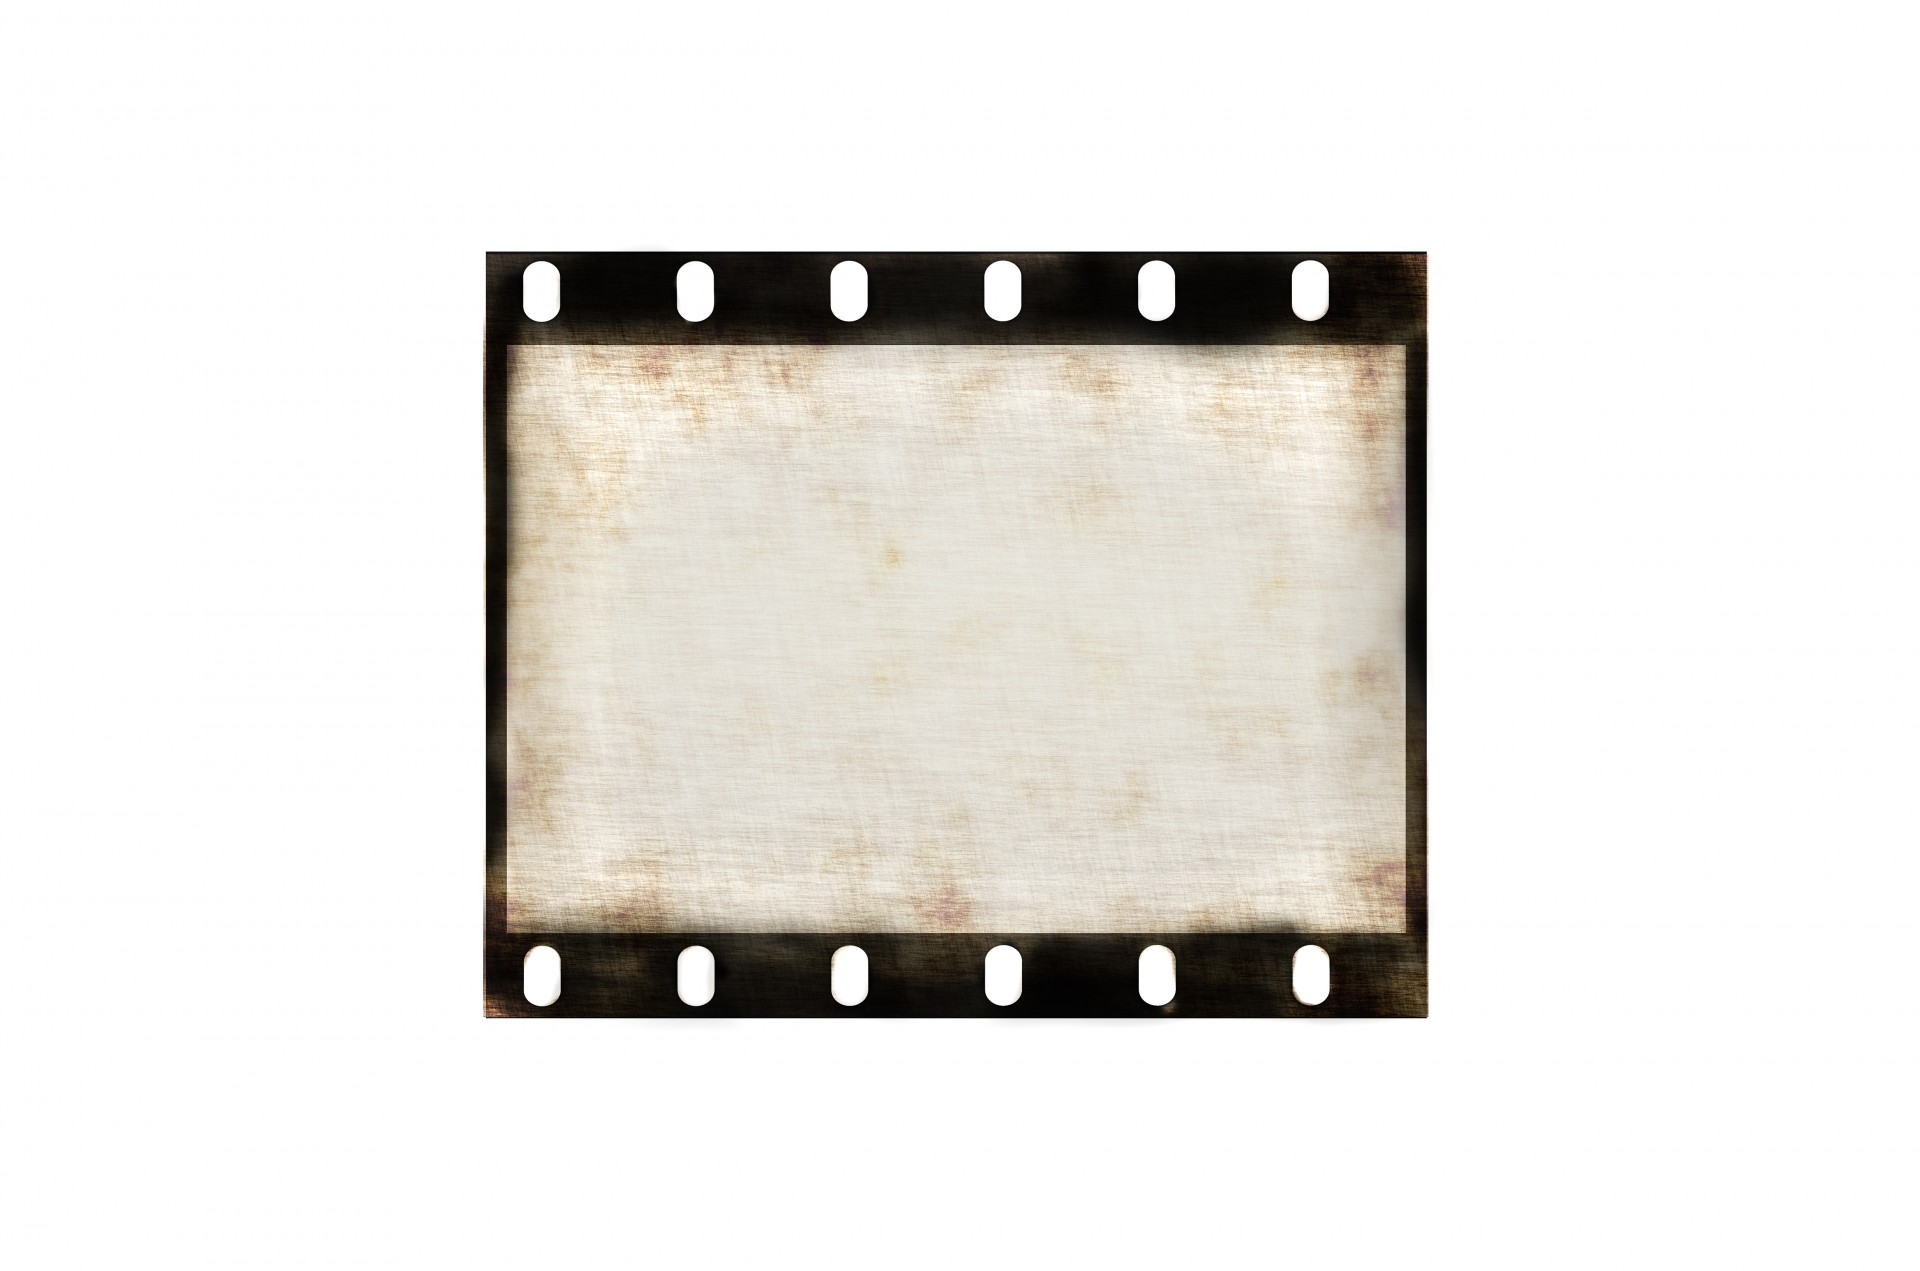 Blank Old Grunge Film Strip Free Stock Photo - Public Domain Pictures